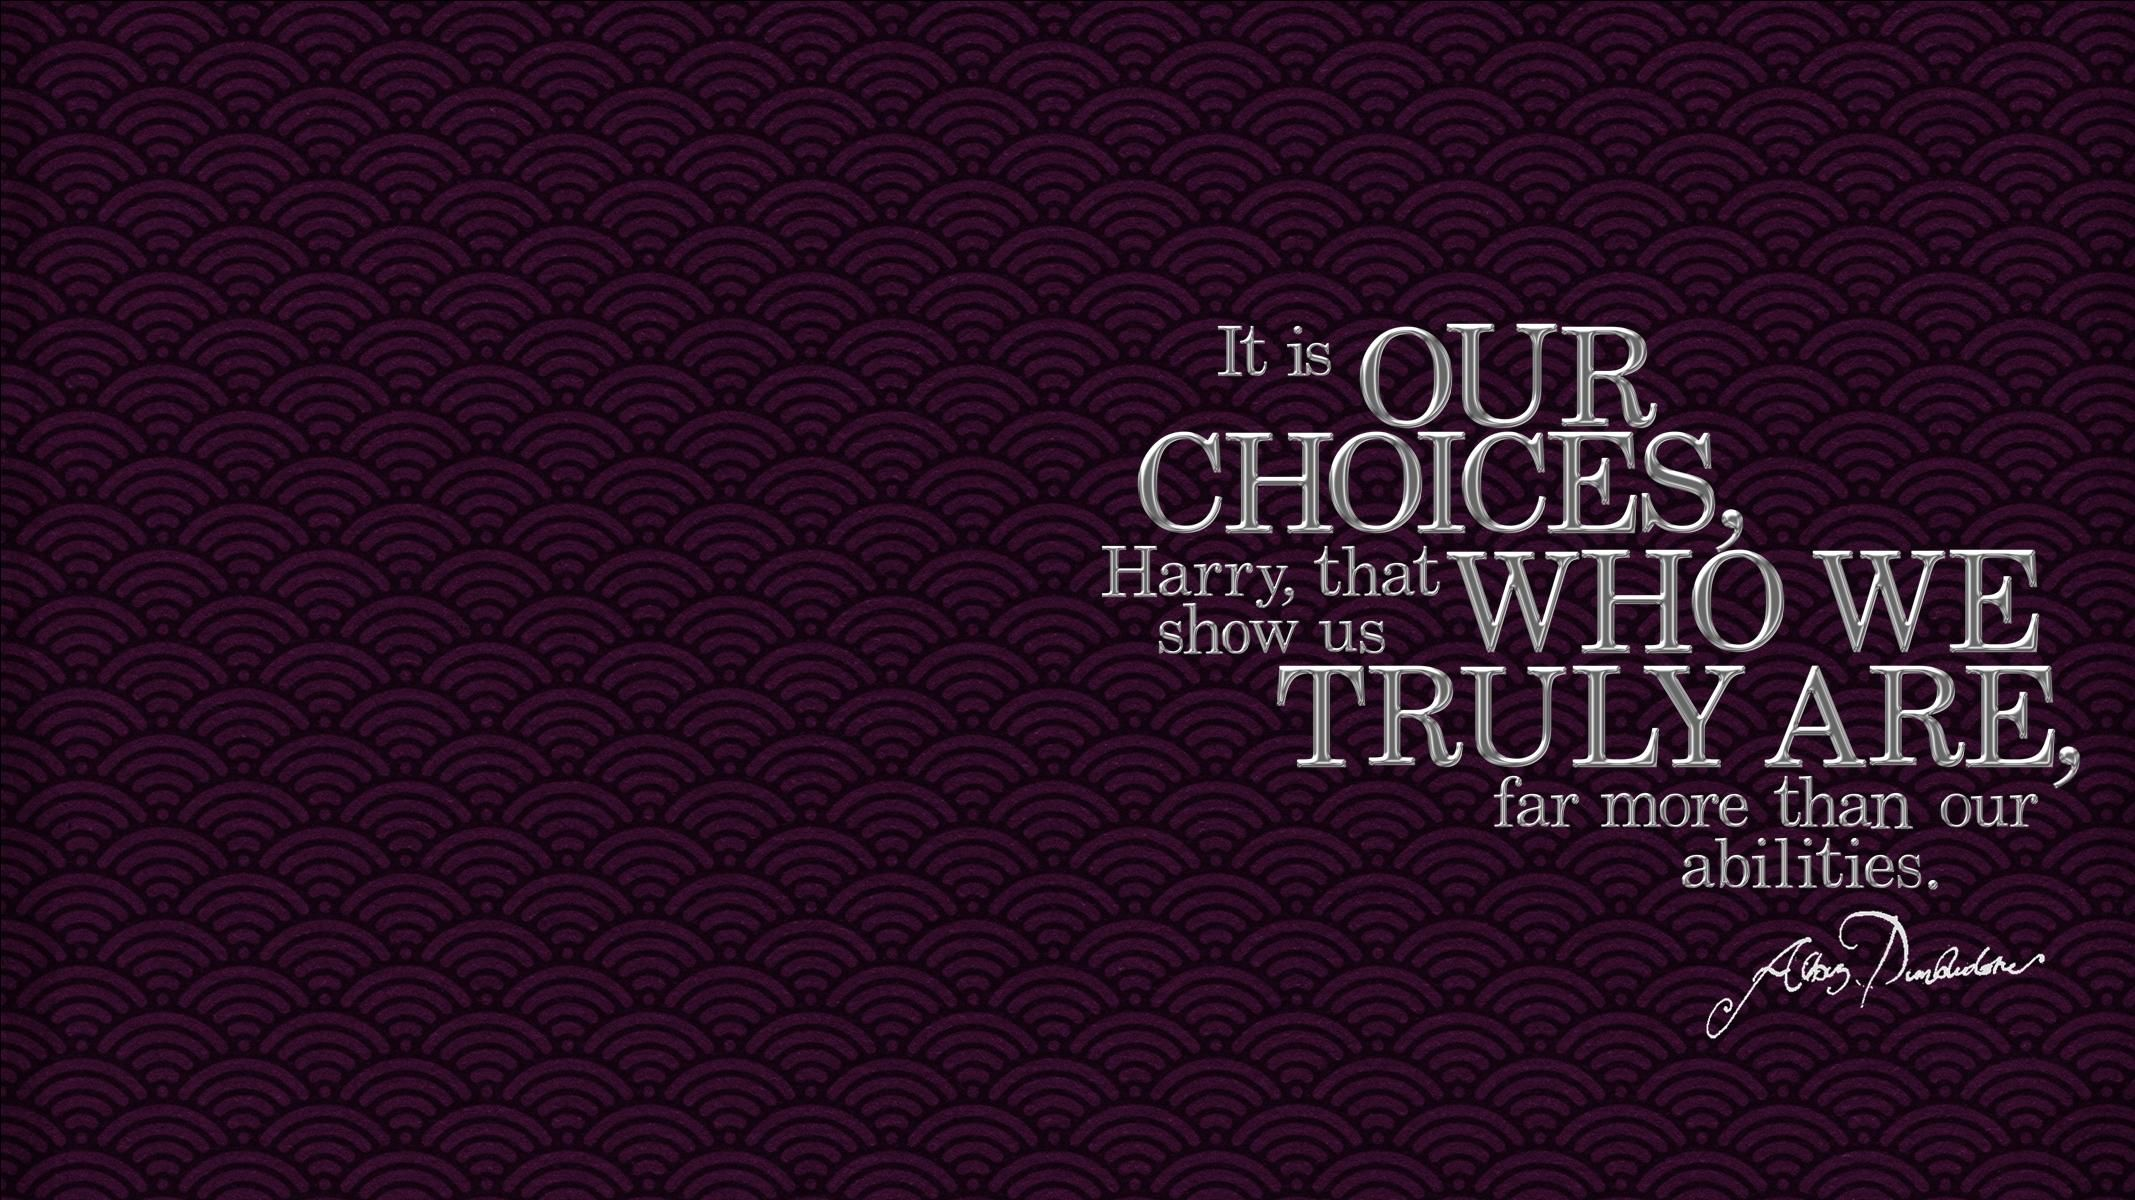 Dumbledore Quote Widescreen Wallpaper Widescreen Wallpaper Made By Deanna Desktop Wallpaper Harry Potter Dumbledore Quotes Harry Potter Quotes Wallpaper